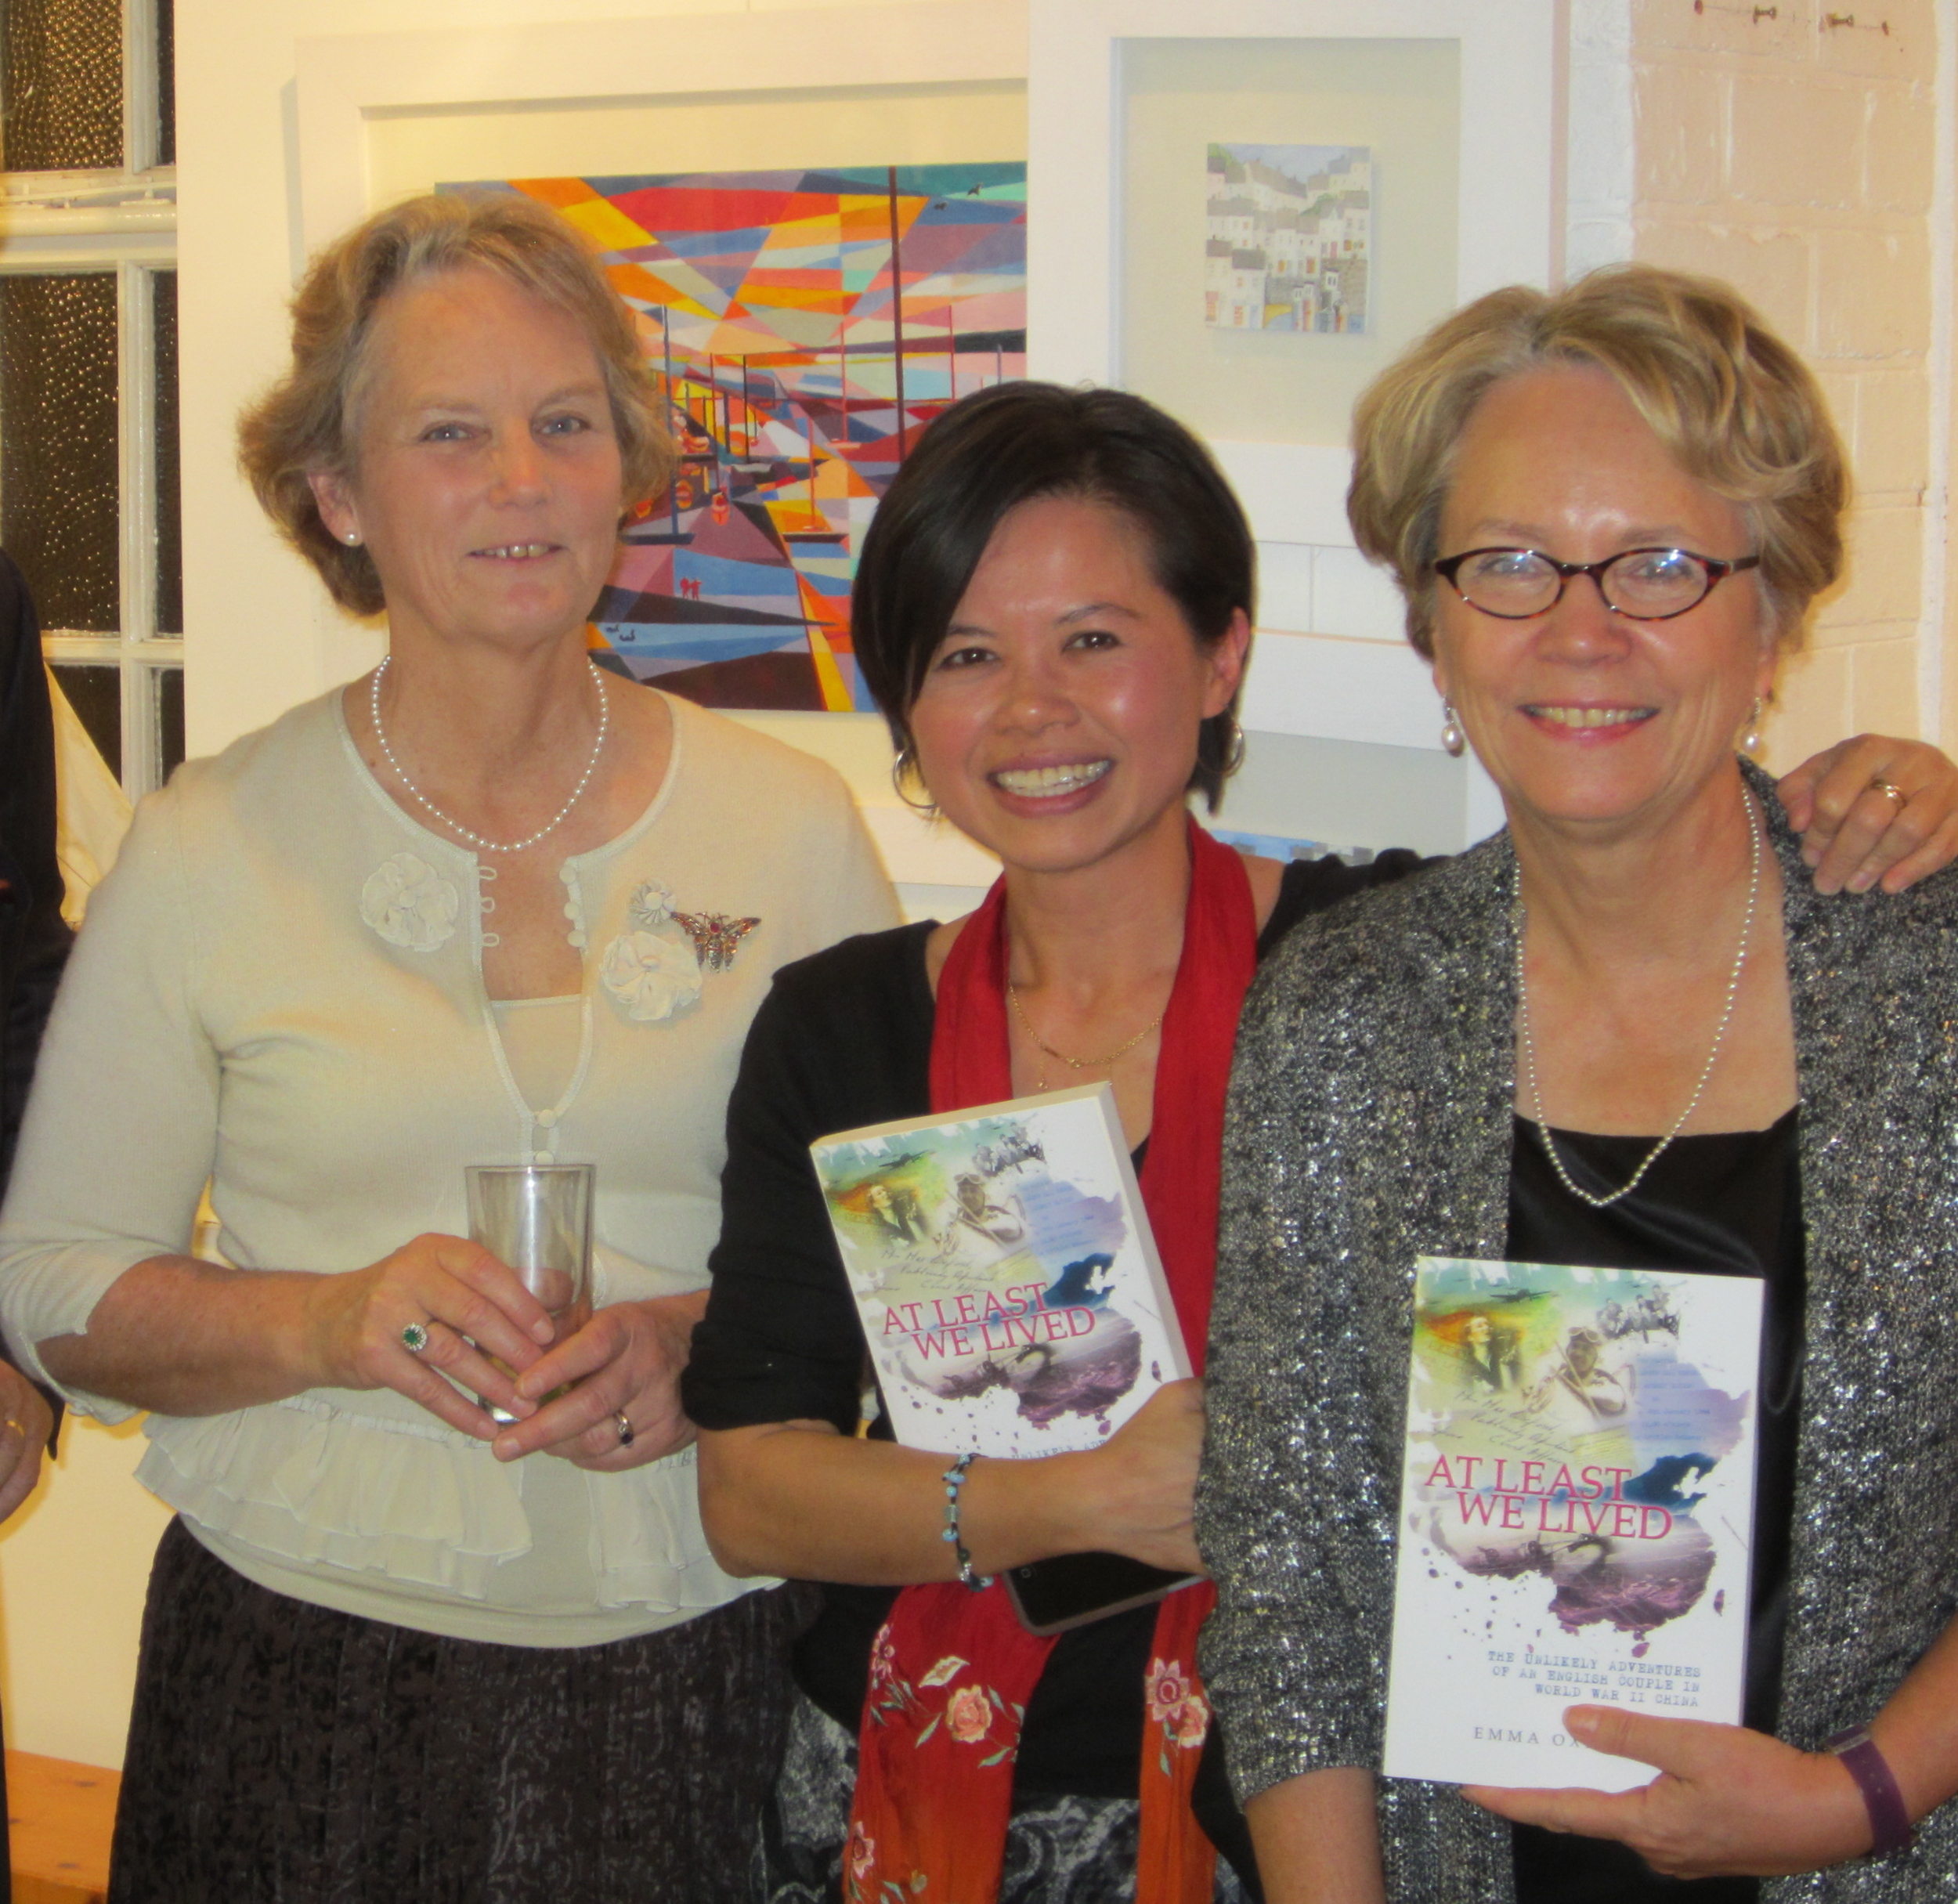 My sister Frances (left) introduced me at Topsham Museum. We are pictured here with book designer, Cece Wong.